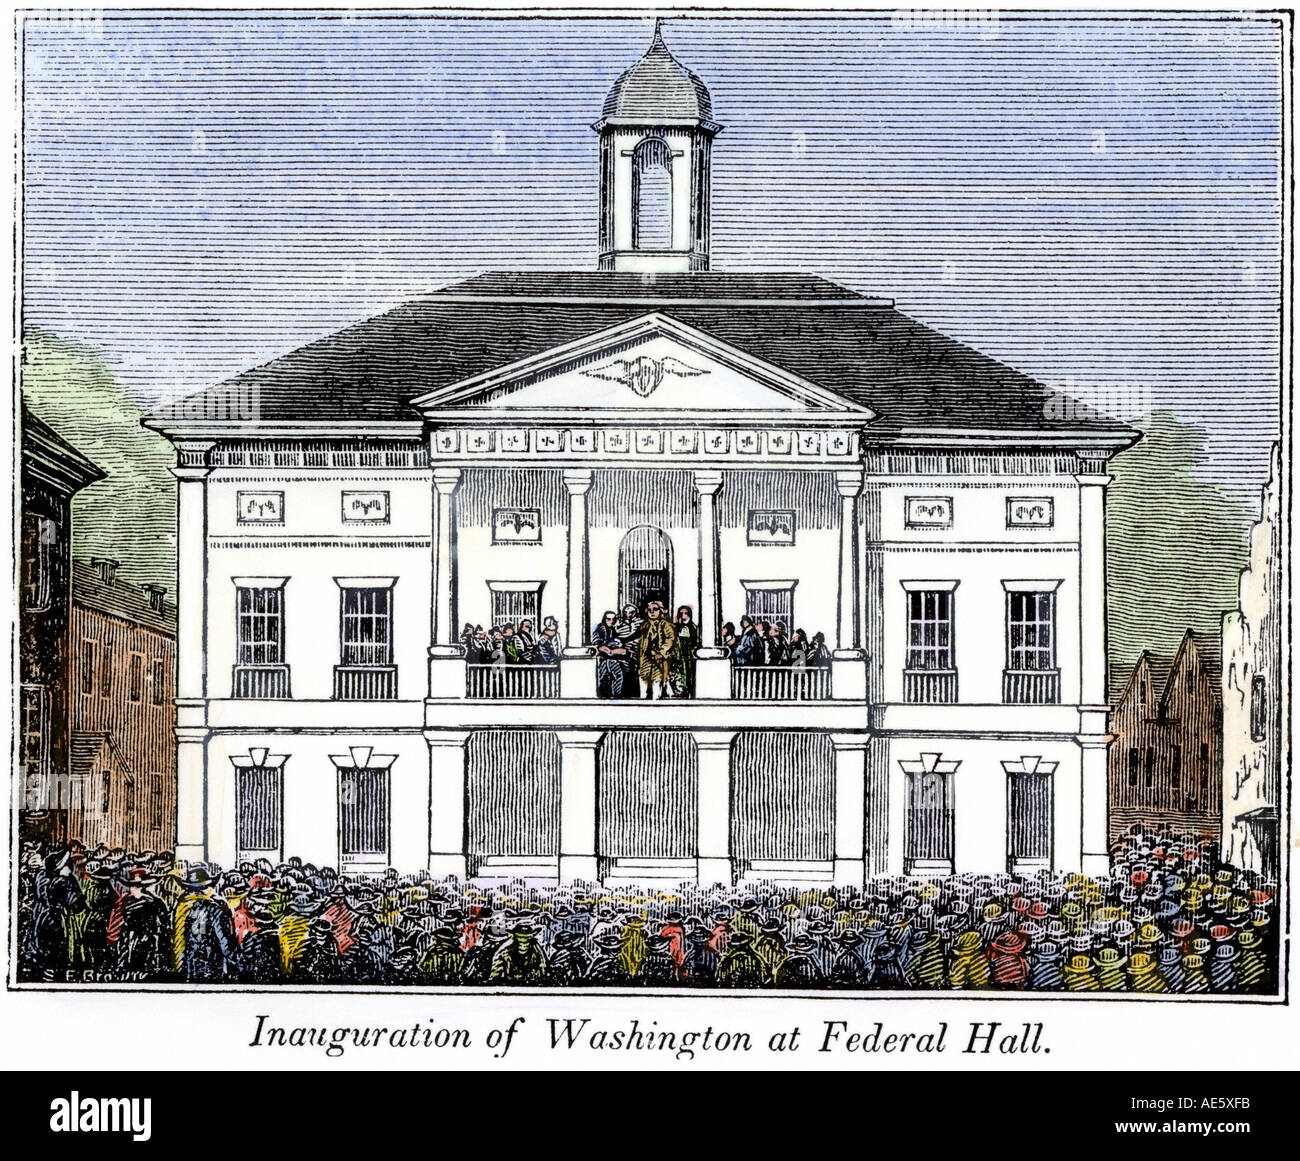 Federal Hall New York during George Washington inauguration as first US President 1789. Hand-colored woodcut - Stock Image